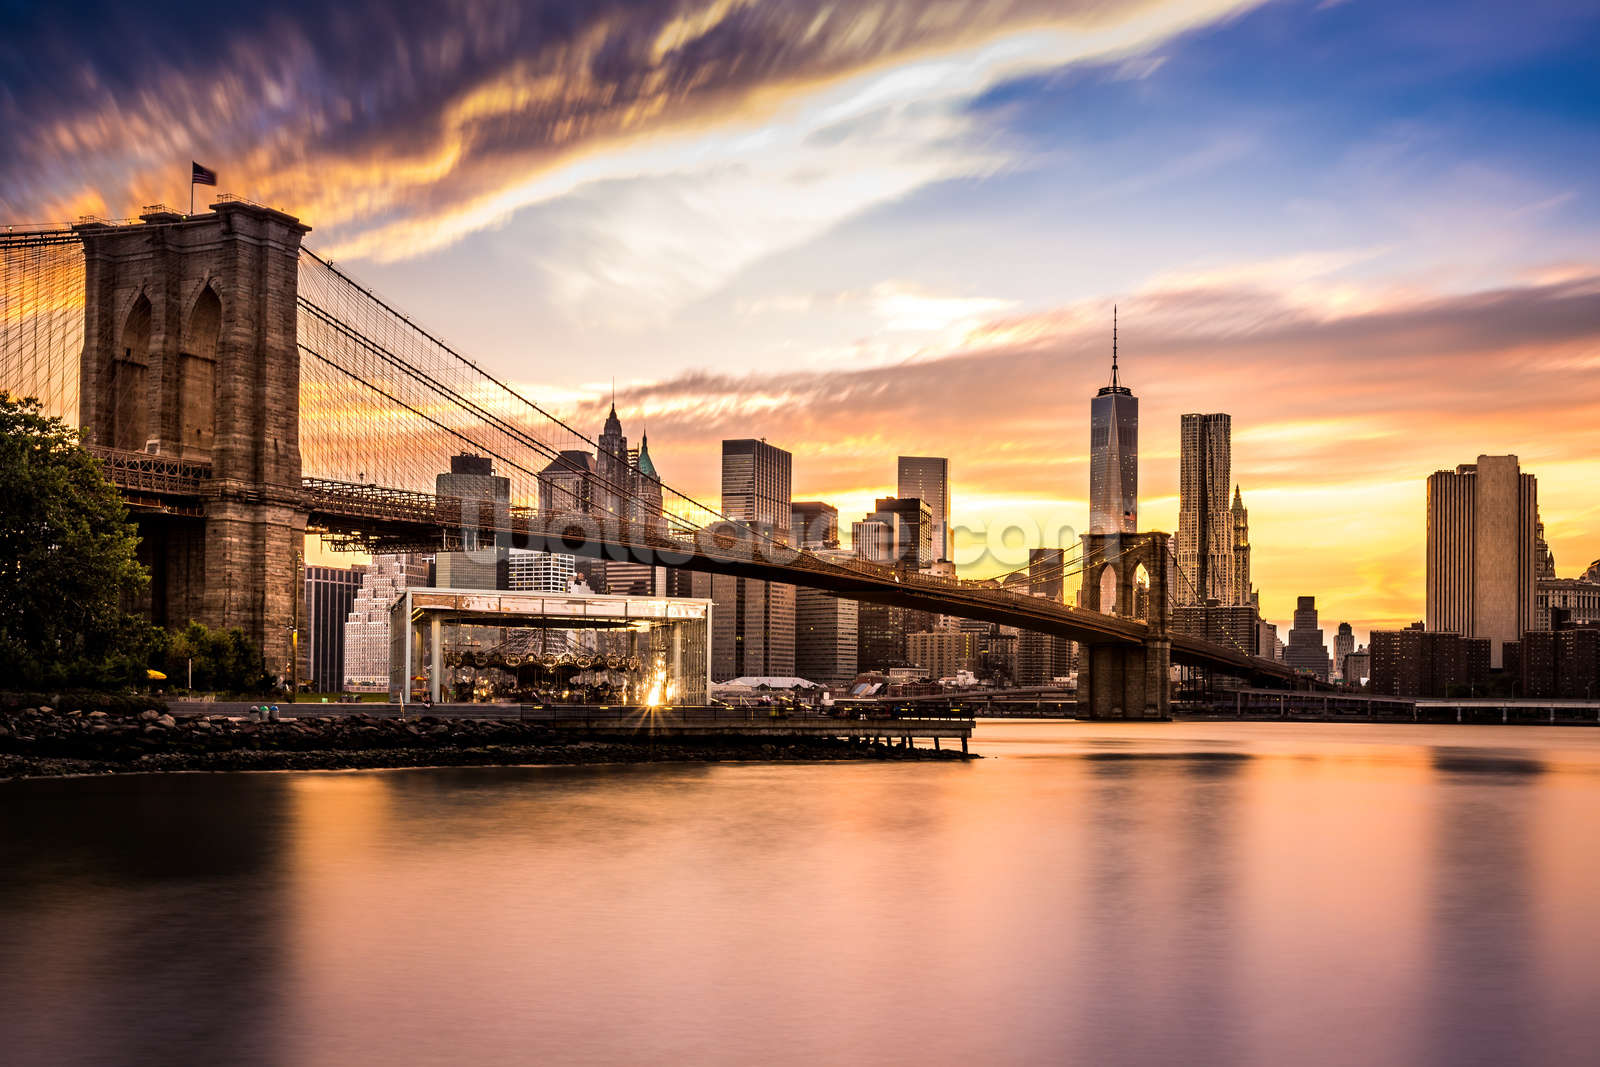 Brooklyn bridge at dusk wallpaper wall mural wallsauce for Brooklyn bridge mural wallpaper